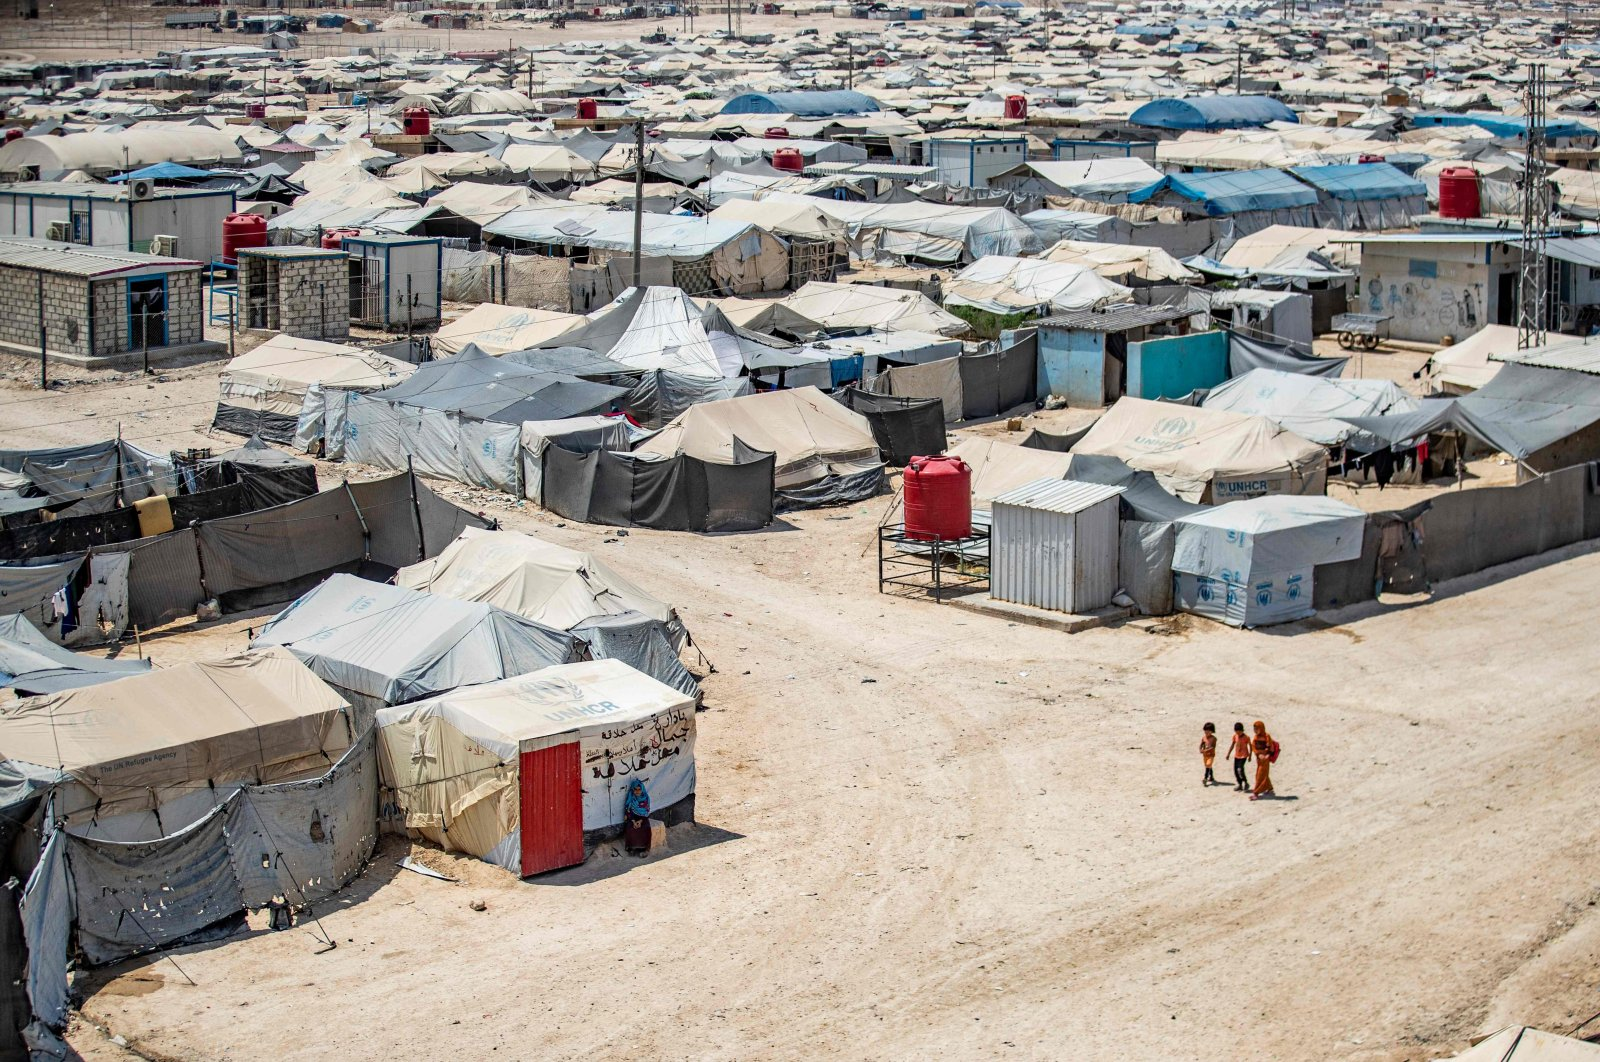 Children walking among shelters at the al-Hol camp, in Syria's northeastern Hassakeh governorate, Aug. 2, 2021. (AFP Photo)